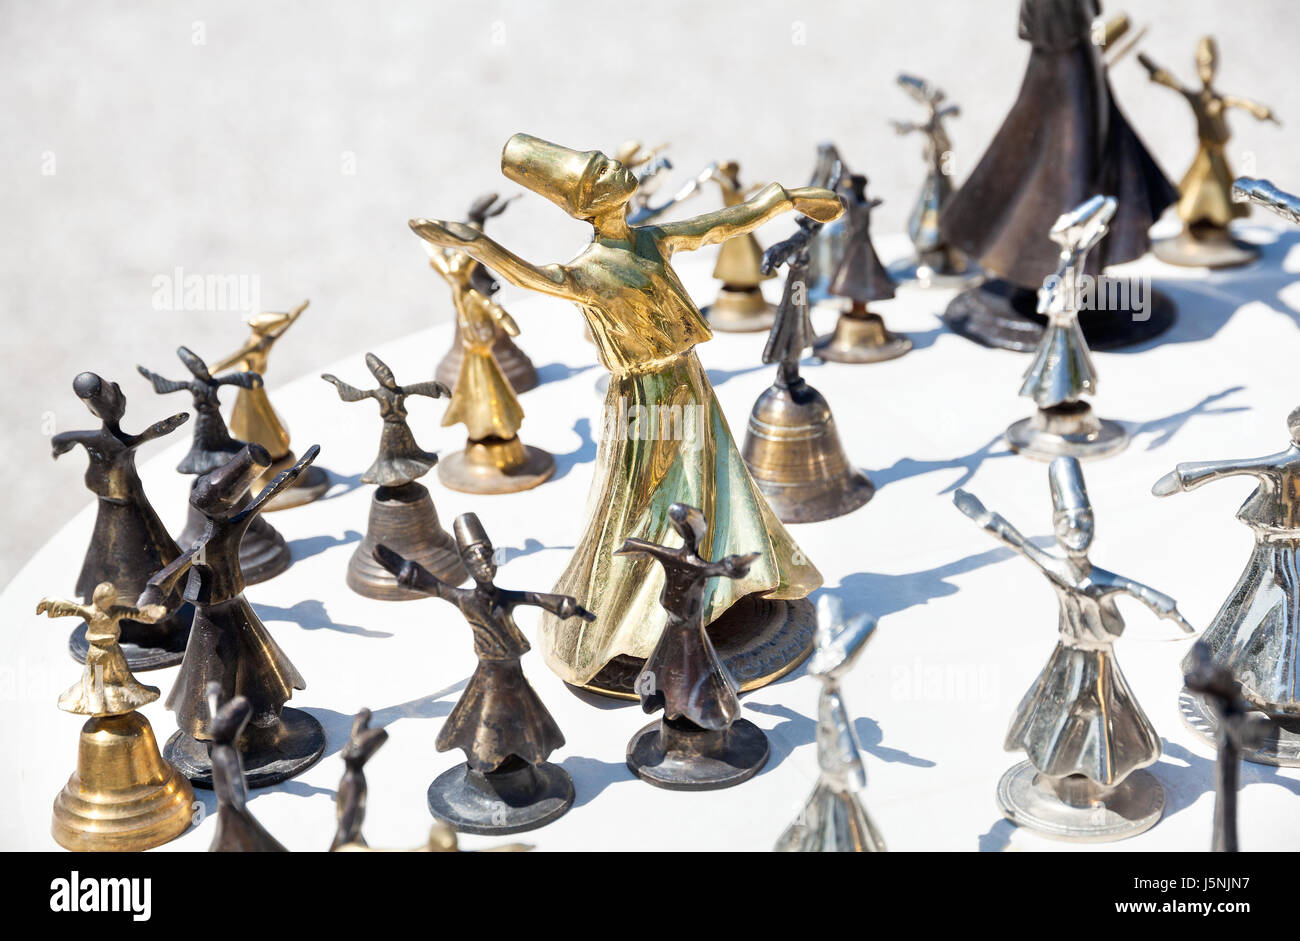 Souvenir of whirling Sufi from metal in the shop, Turkey - Stock Image